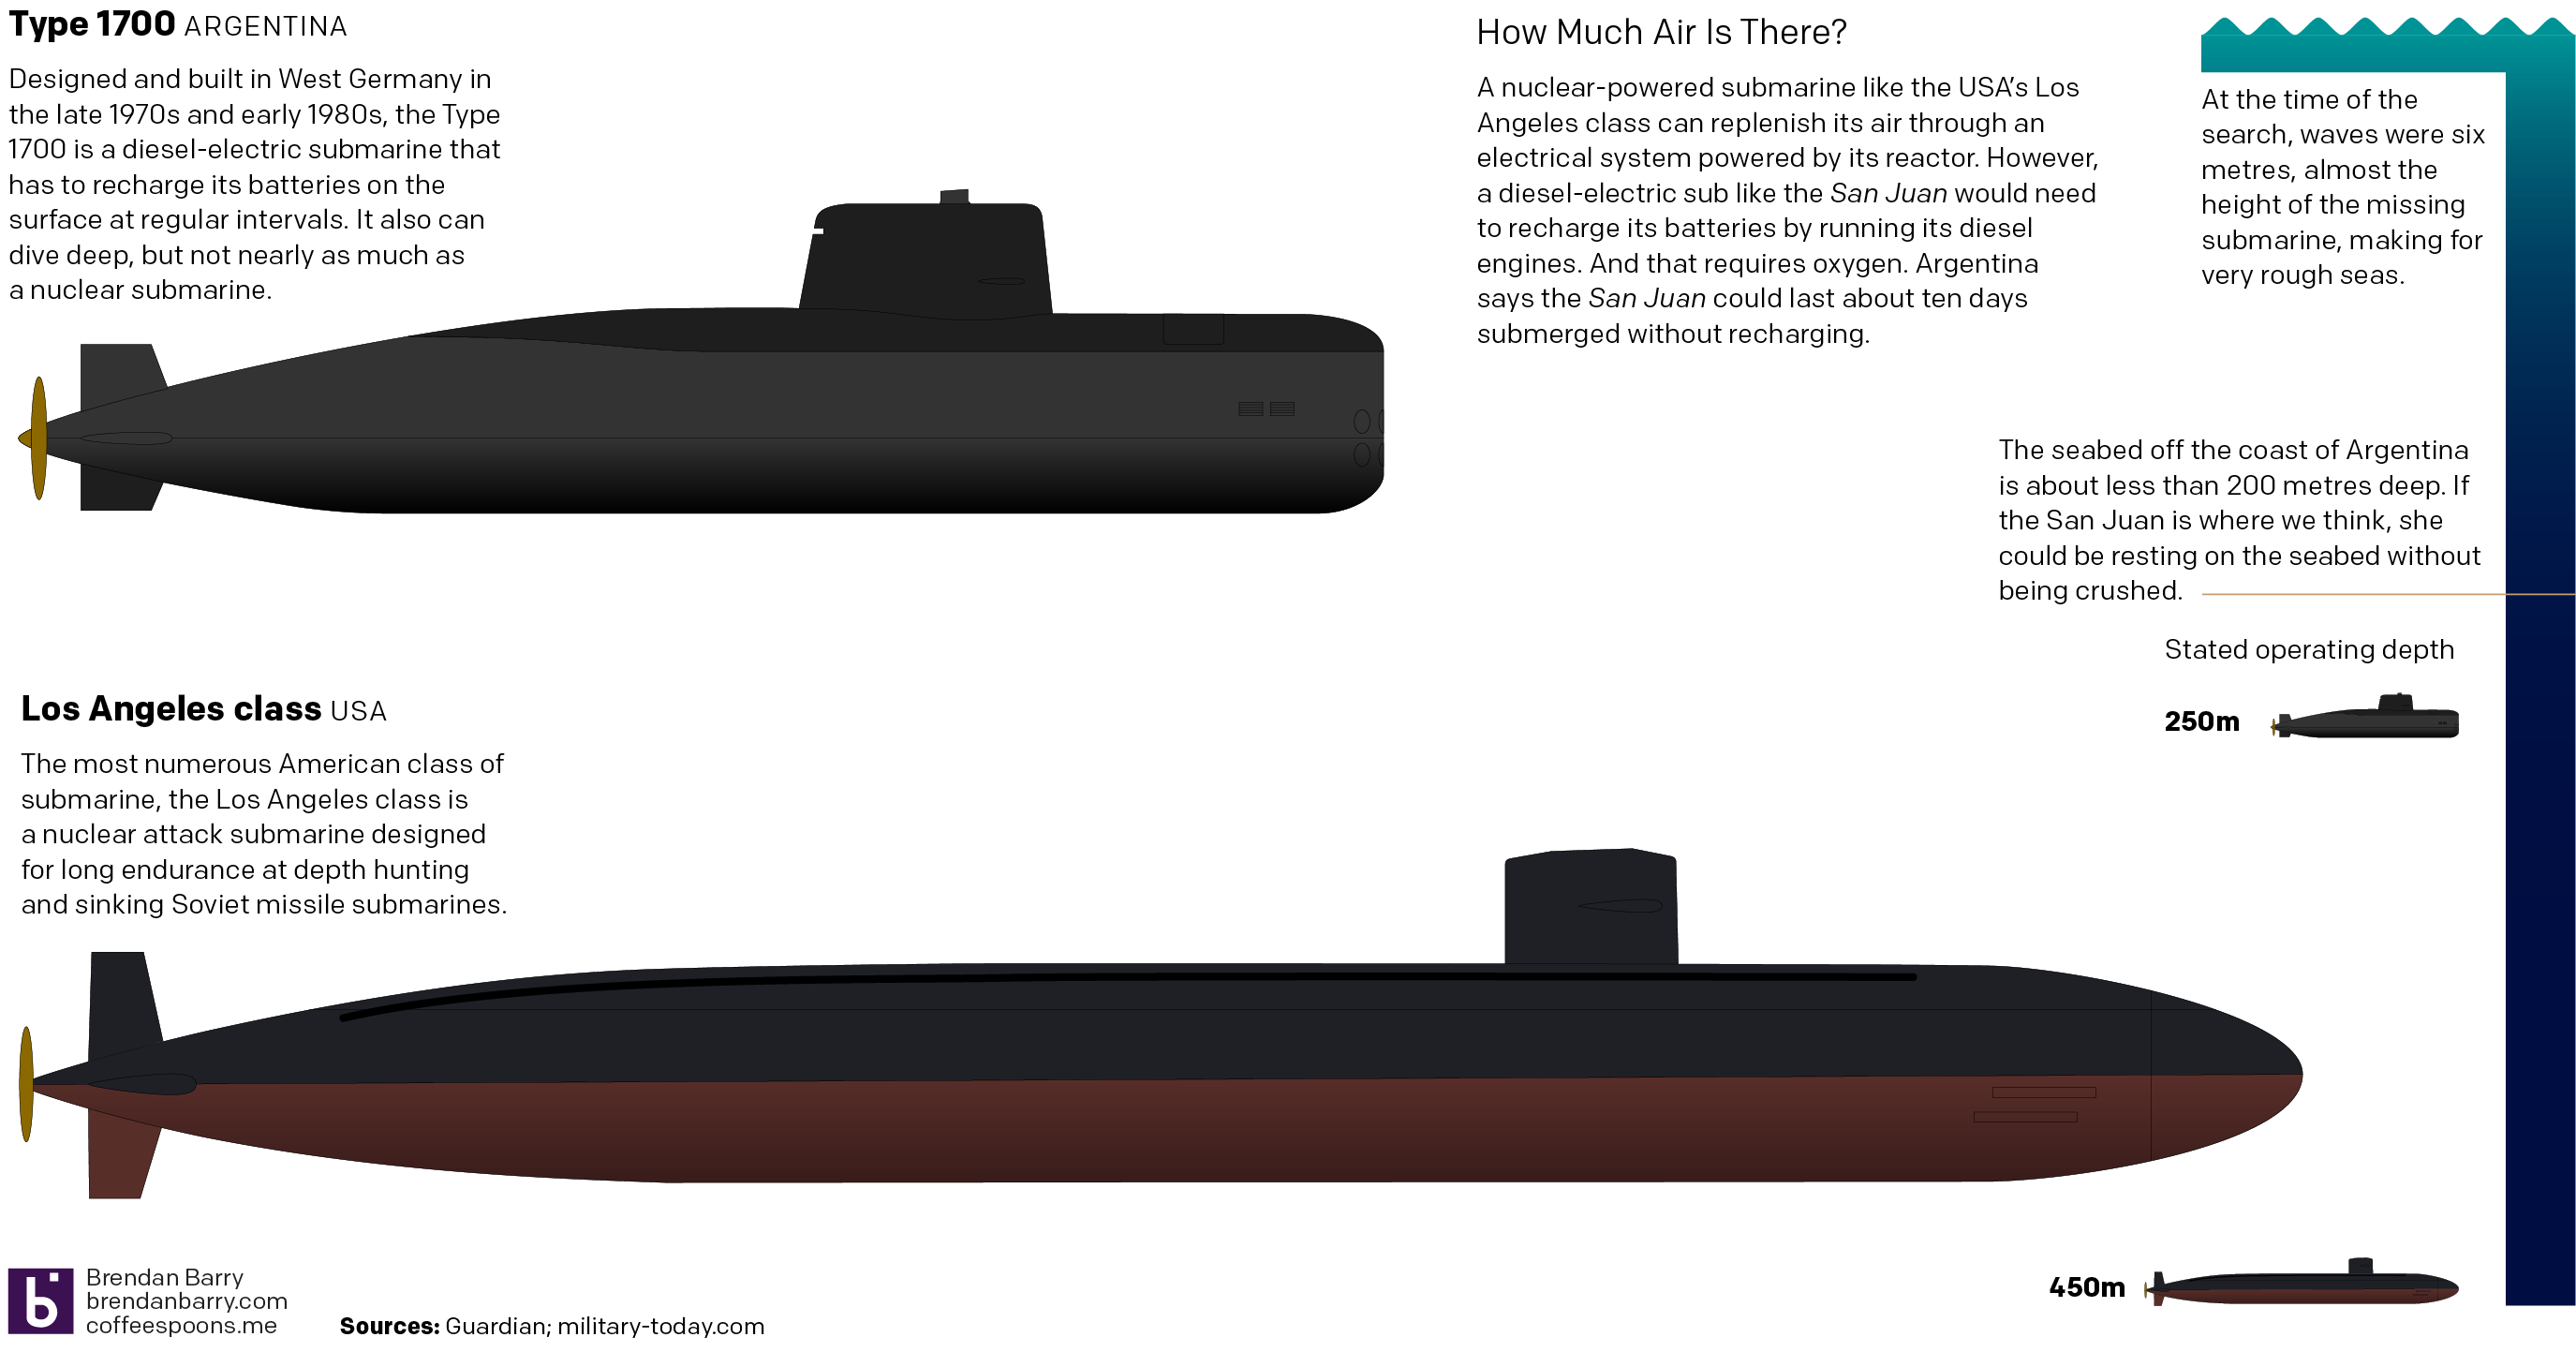 The Argentinian sub is just over half the size of the American sub. It's rather small.